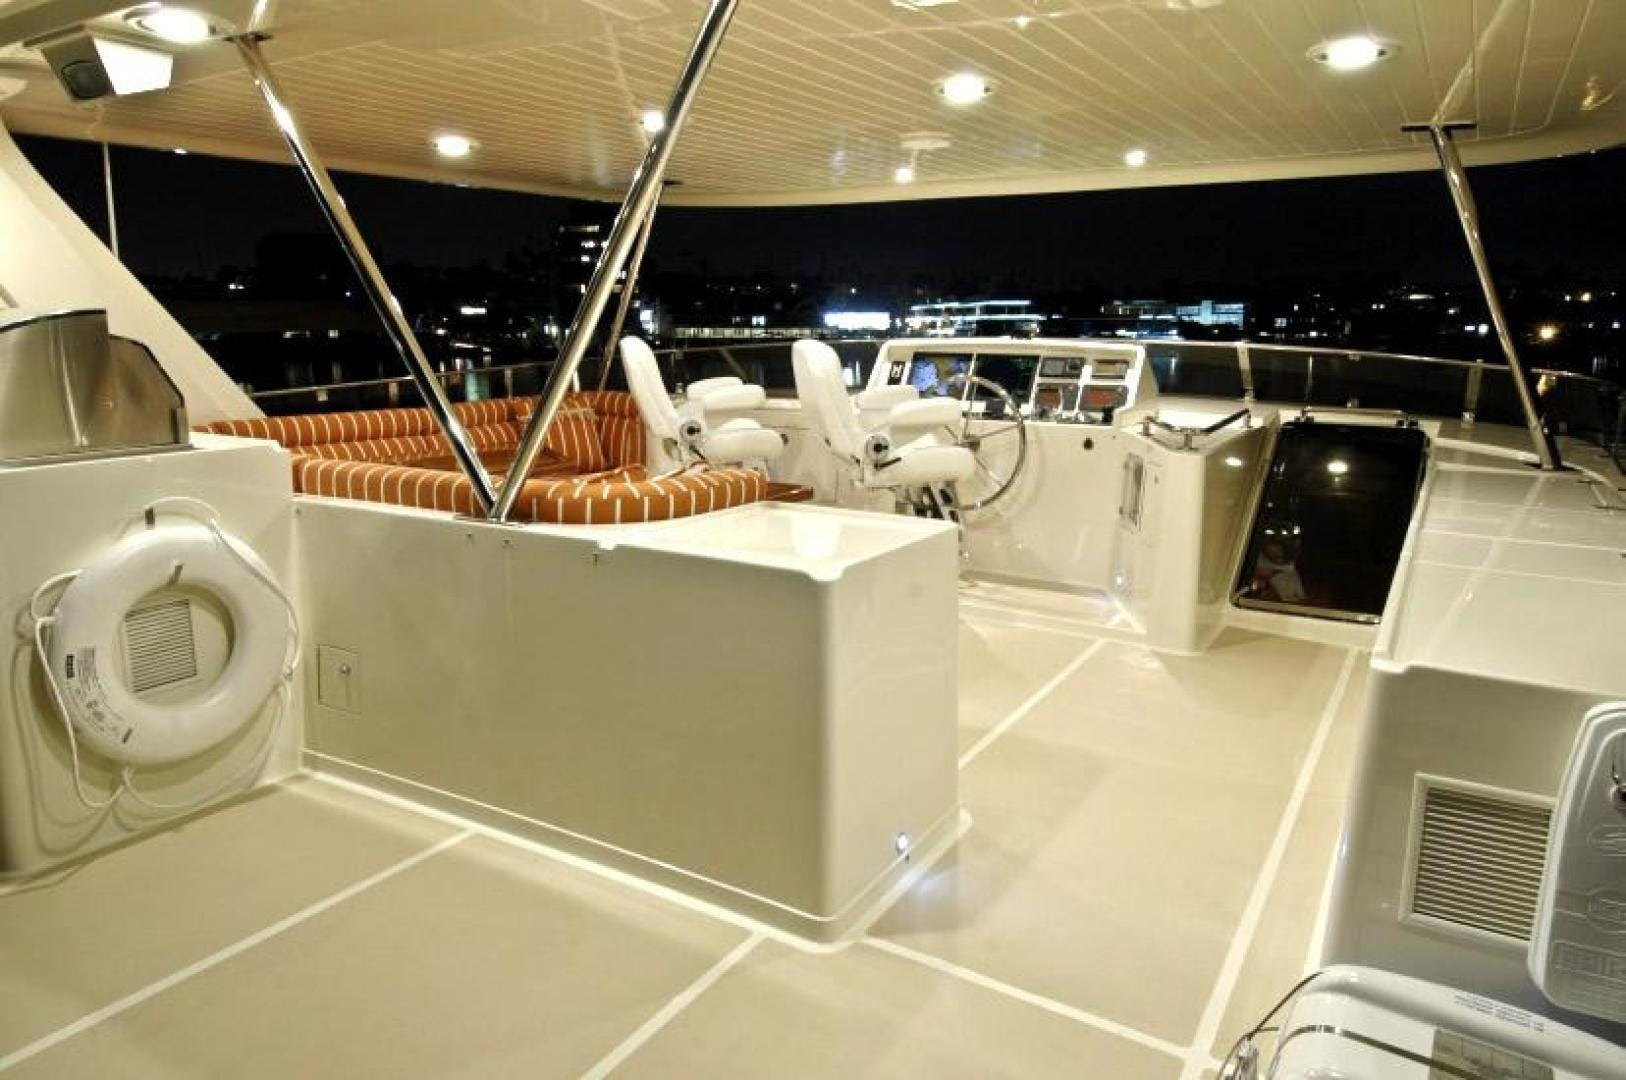 2021 Offshore Yachts 80' 76/80 Motoryacht  | Picture 7 of 11